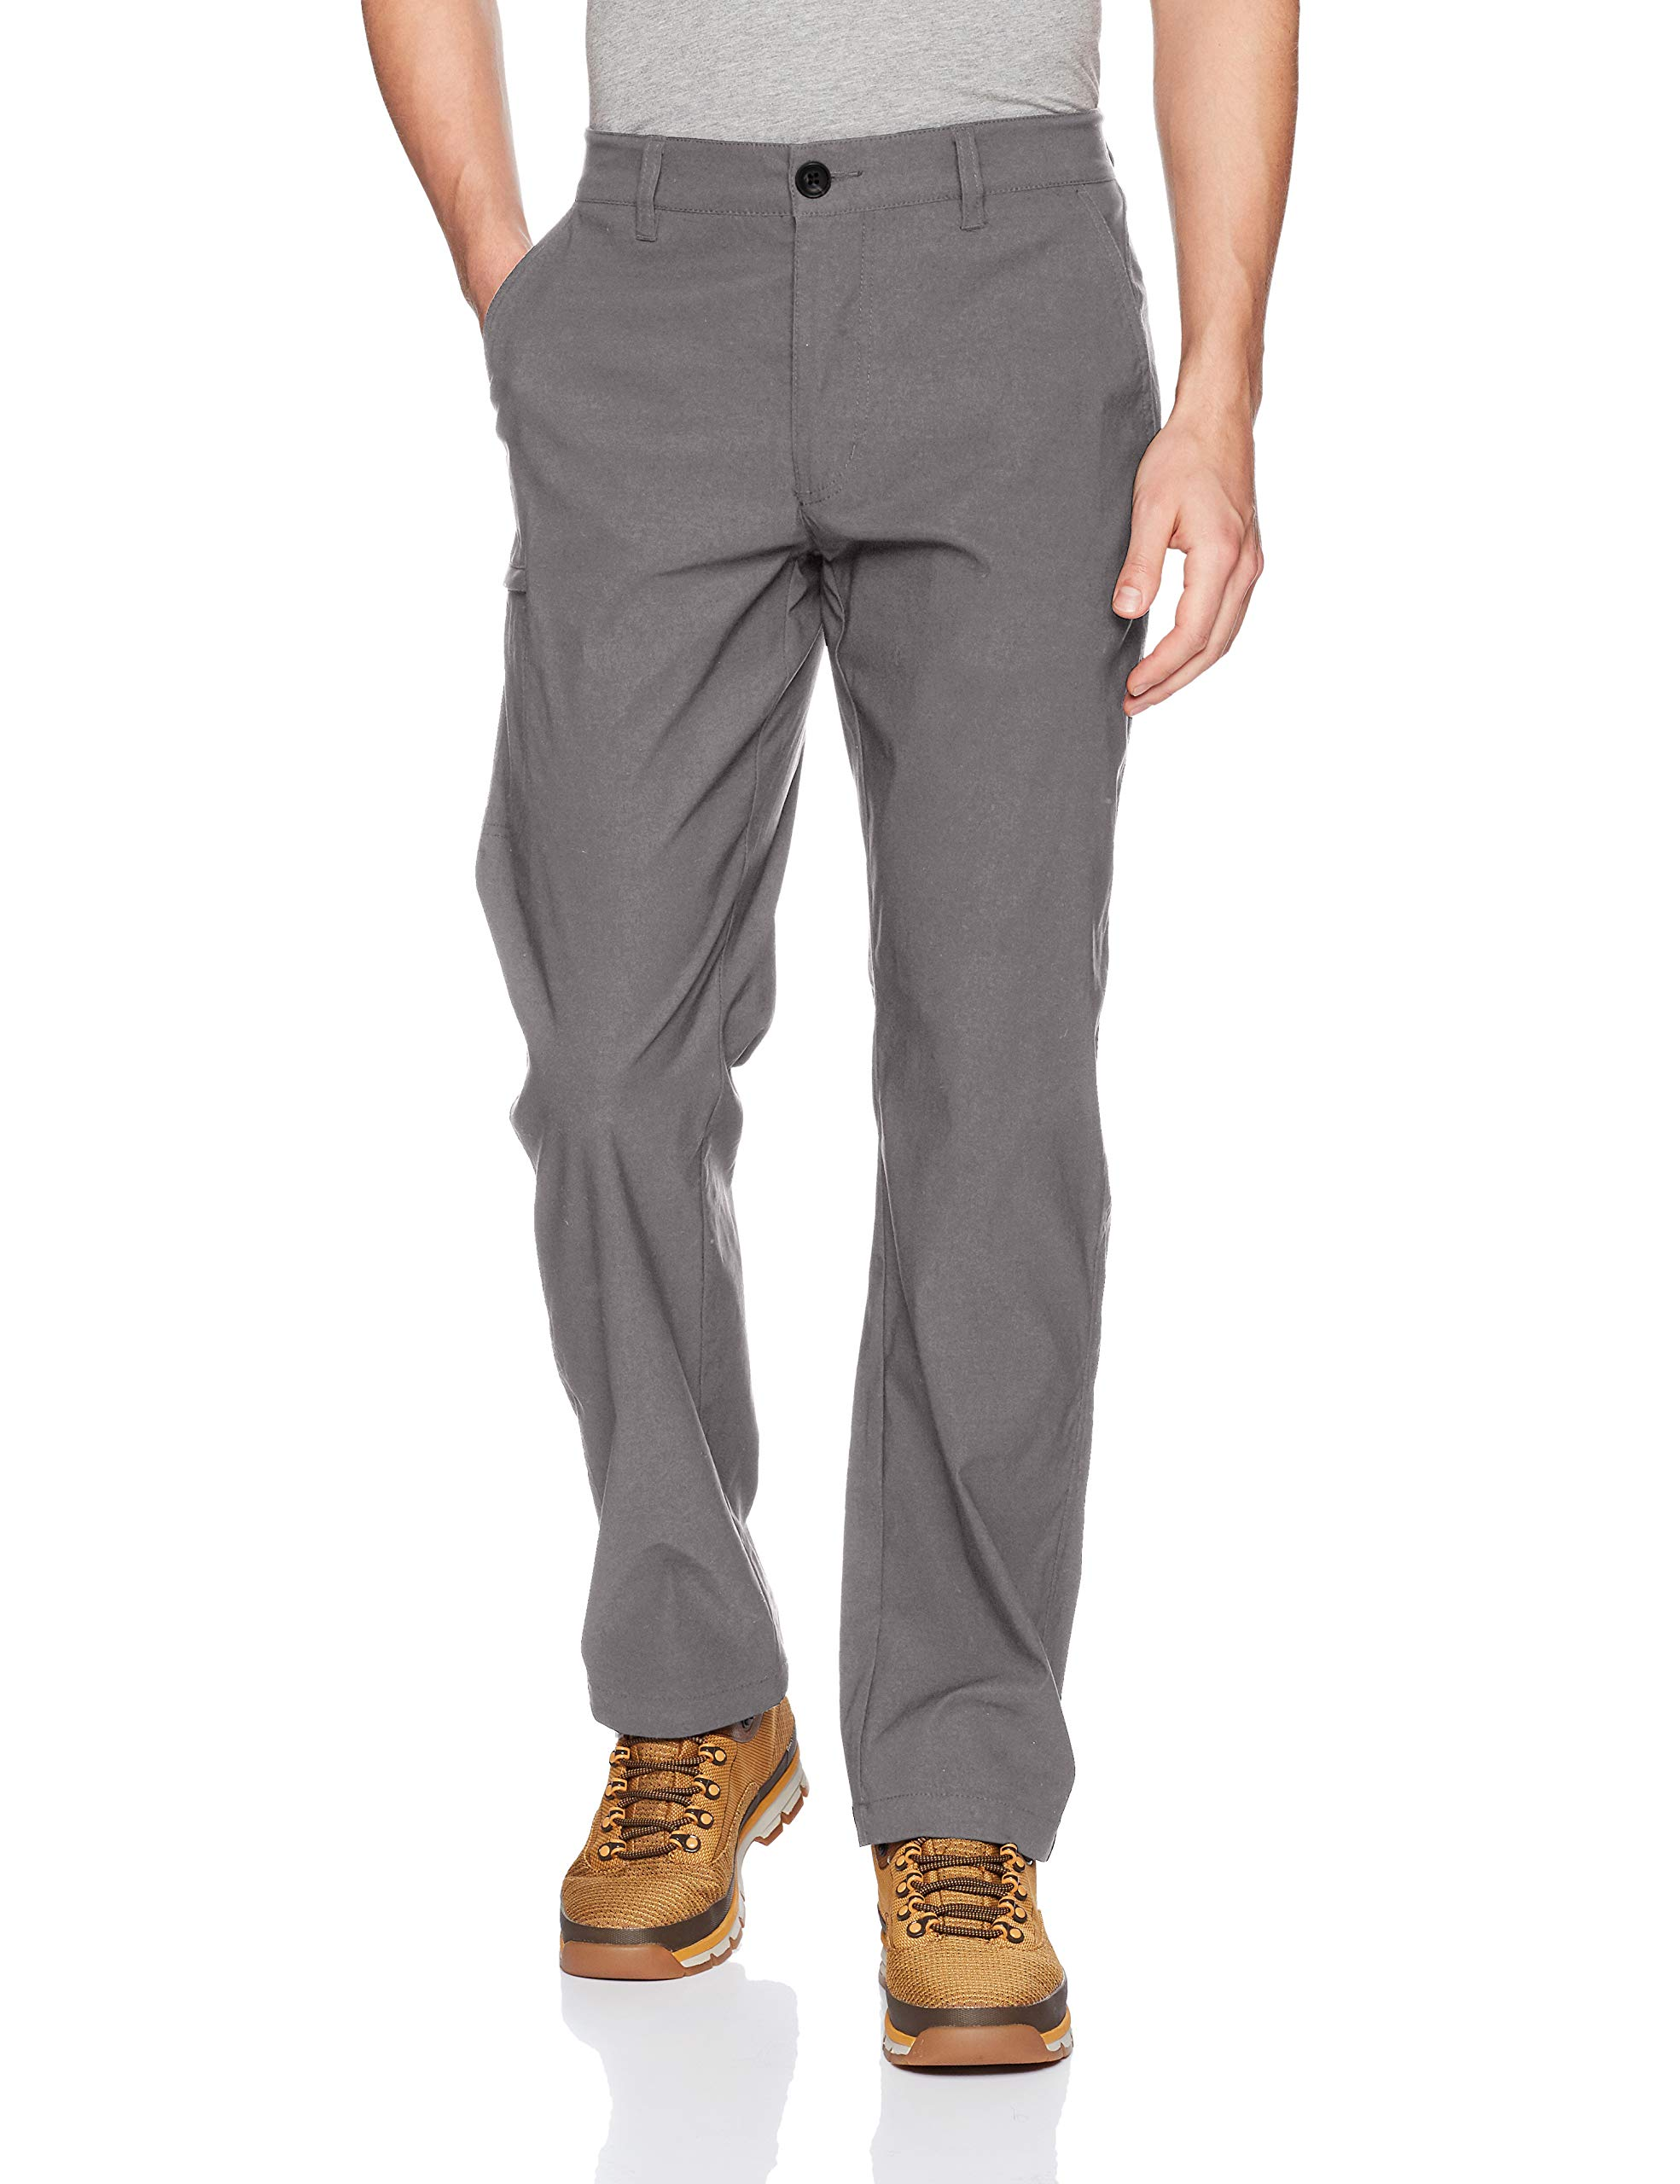 UNIONBAY Men's Rainier Lightweight Comfort Travel Tech Chino Pants, Charcoal, 34x32 by UNIONBAY